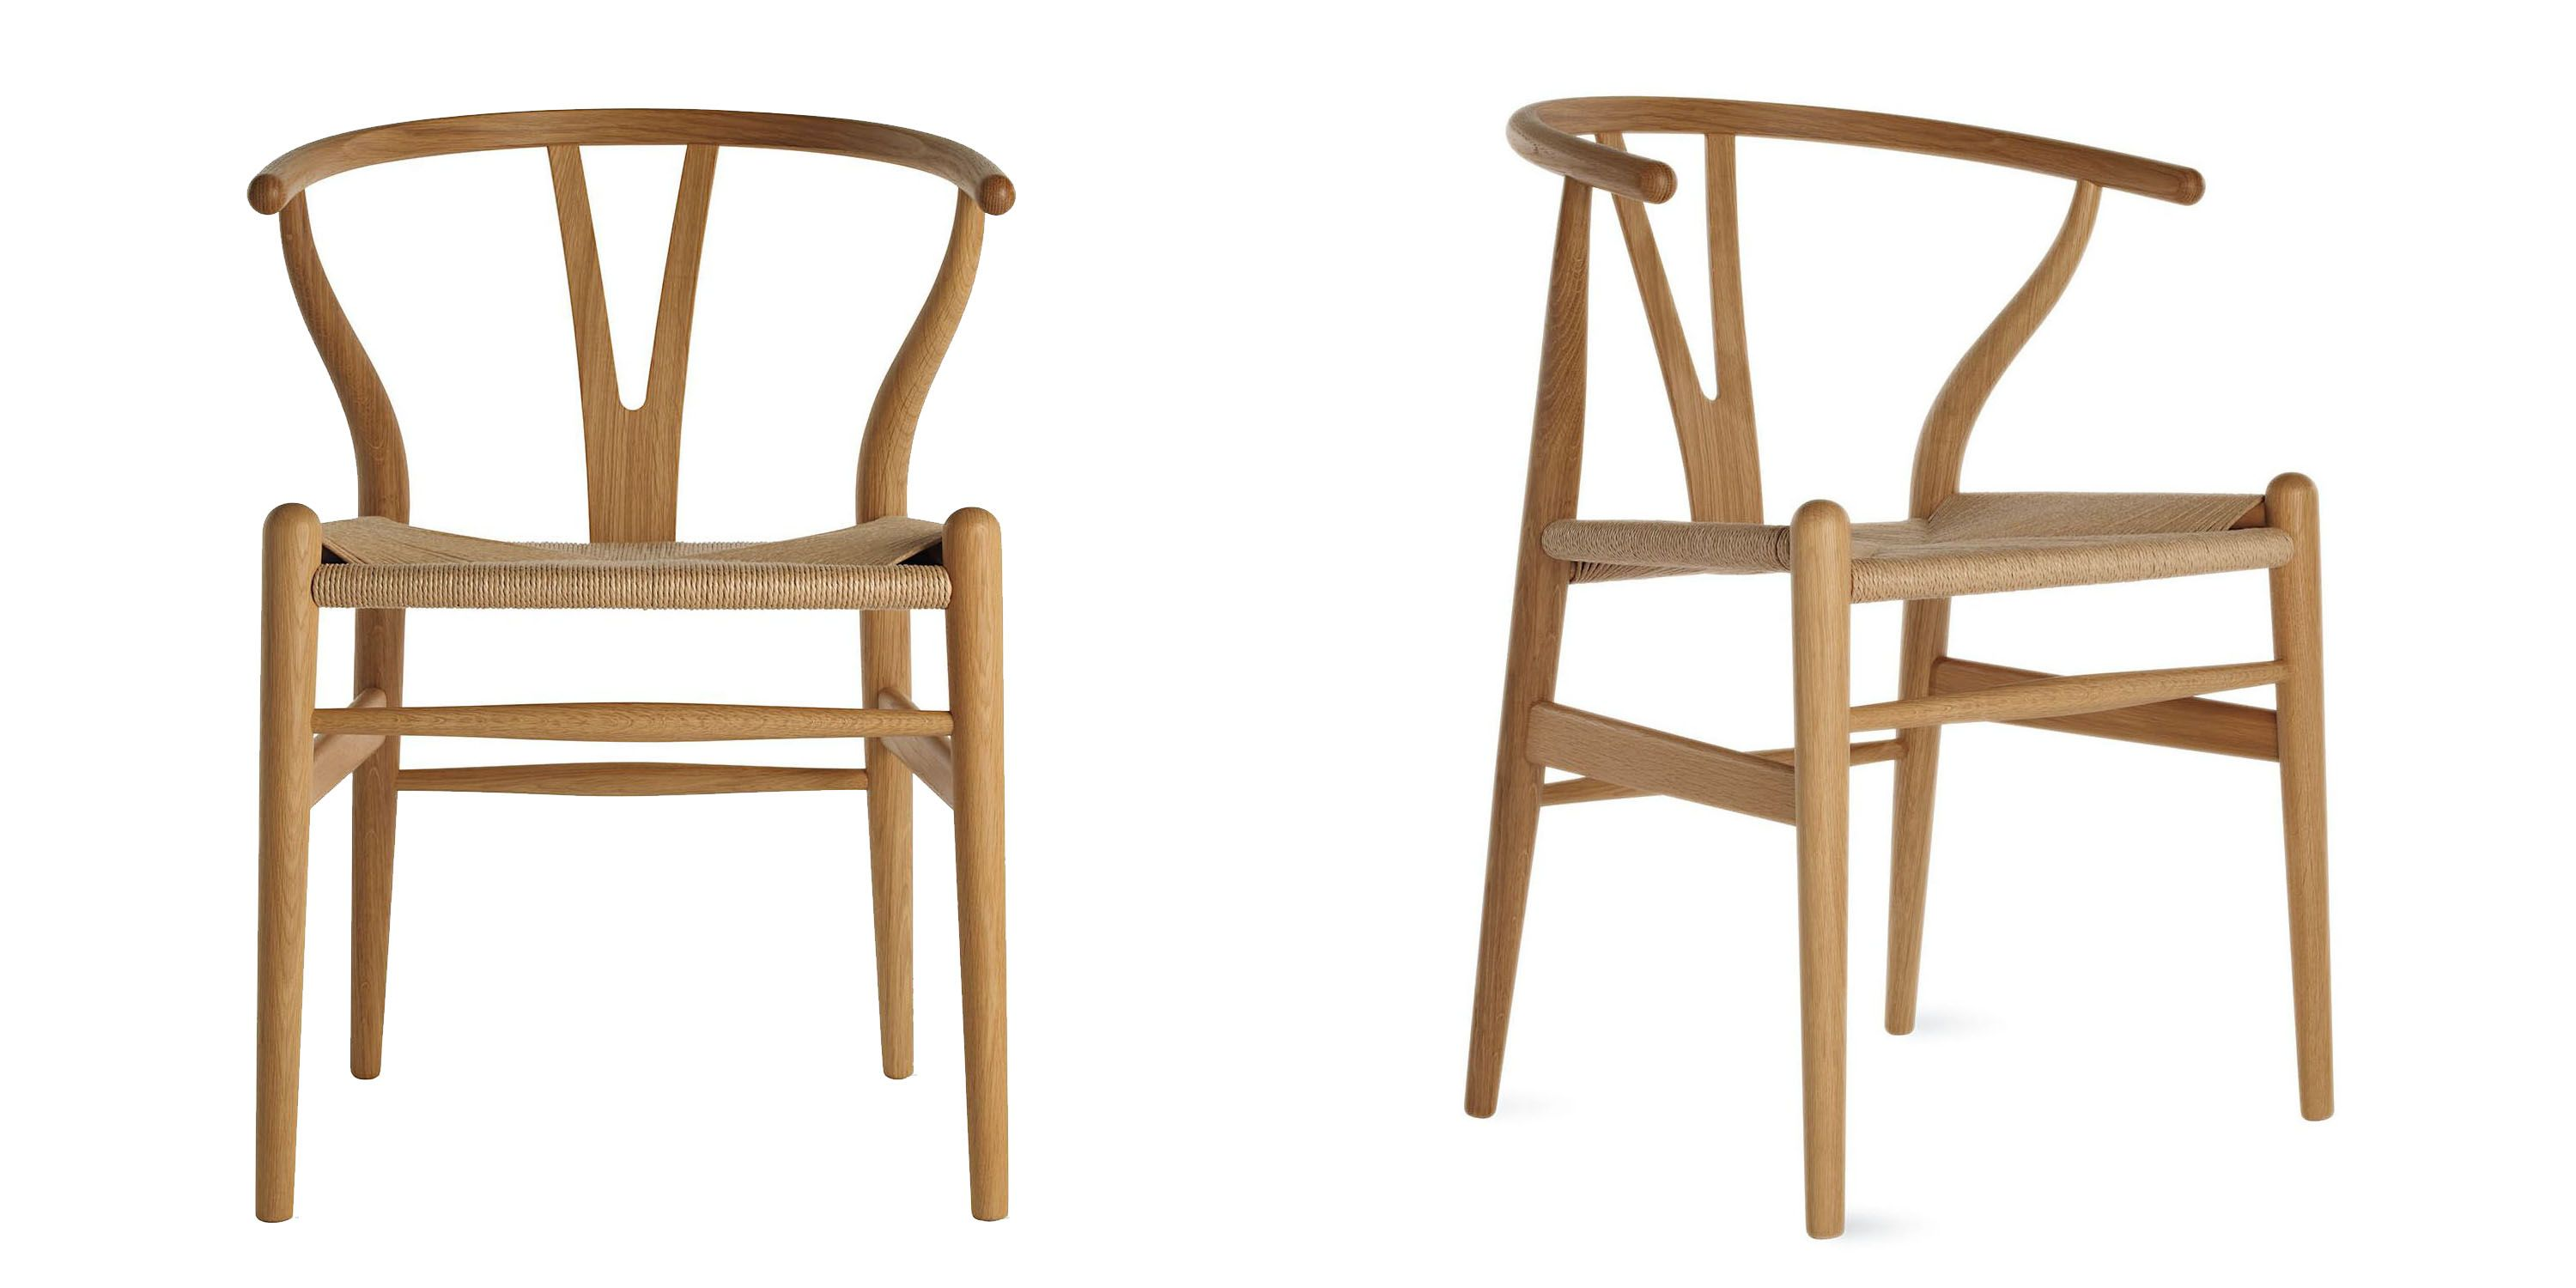 Wishbone Chairs The History Of The Wishbone Chair 5 Unexpected Facts About Hans